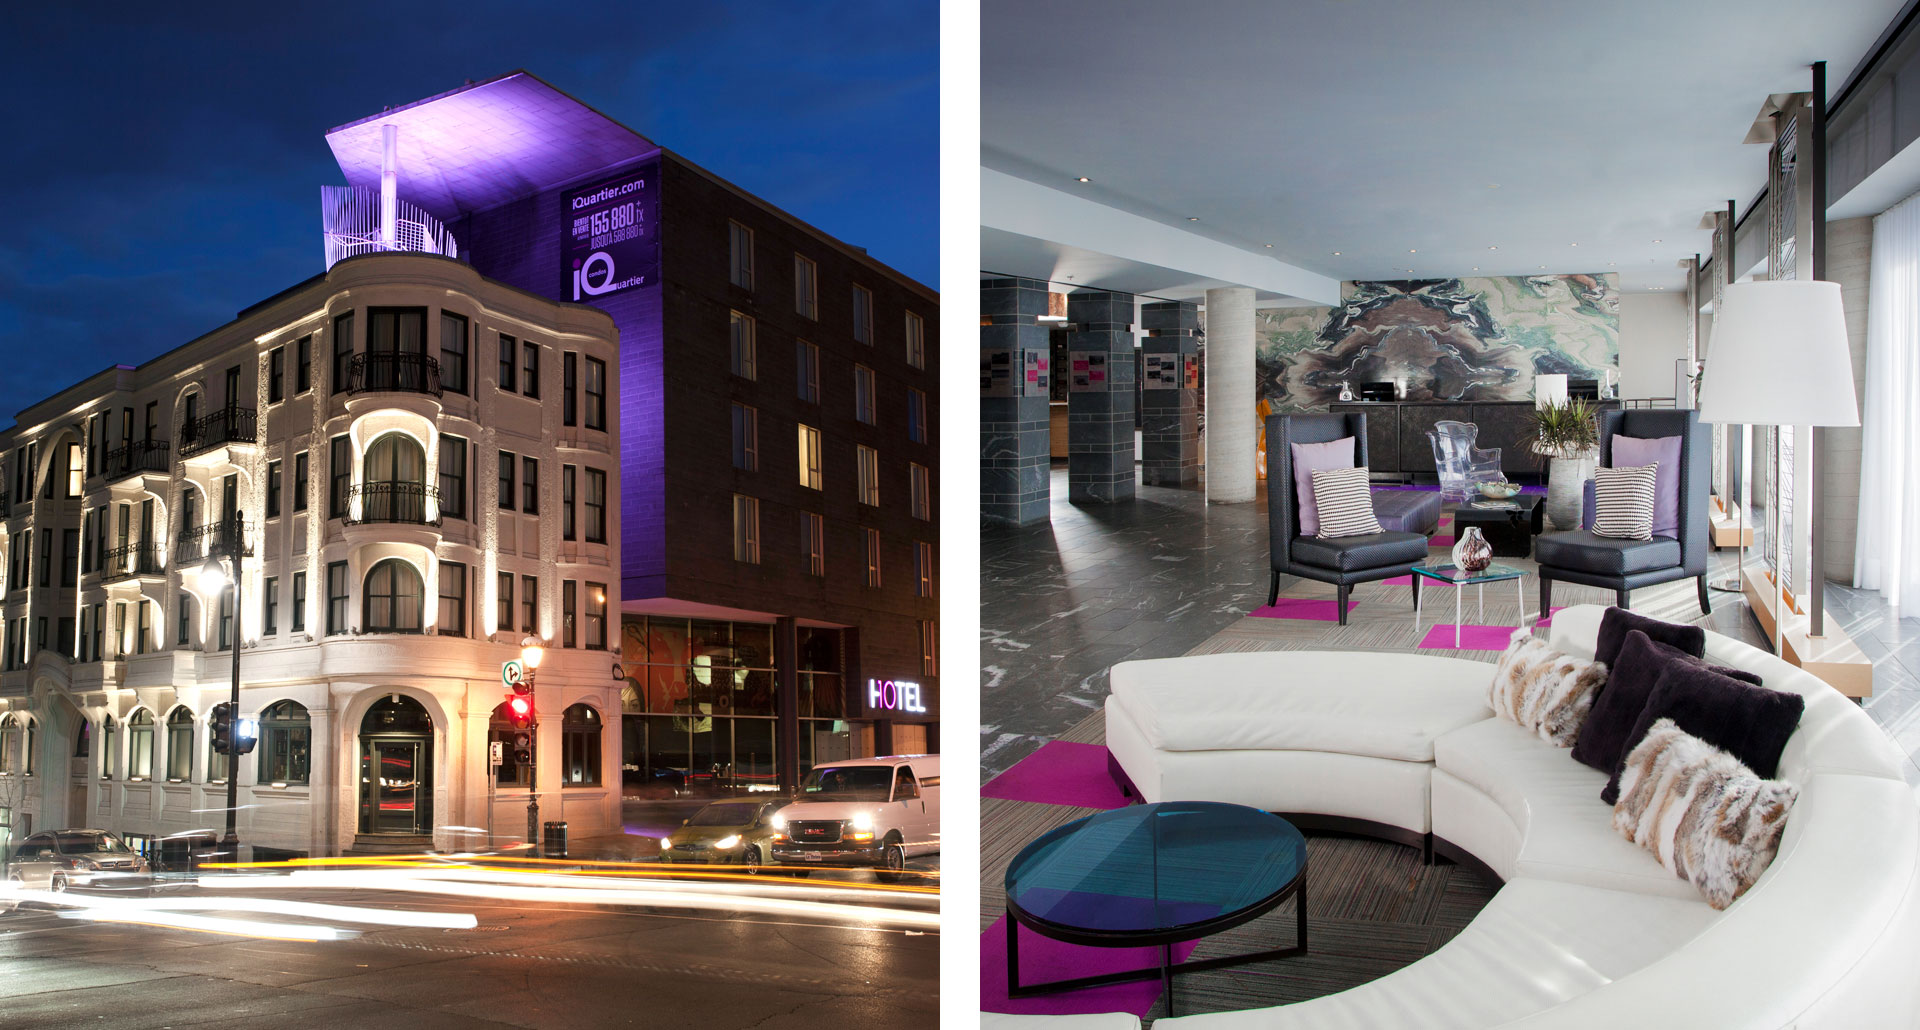 Hotel 10 - boutique hotel in Montreal